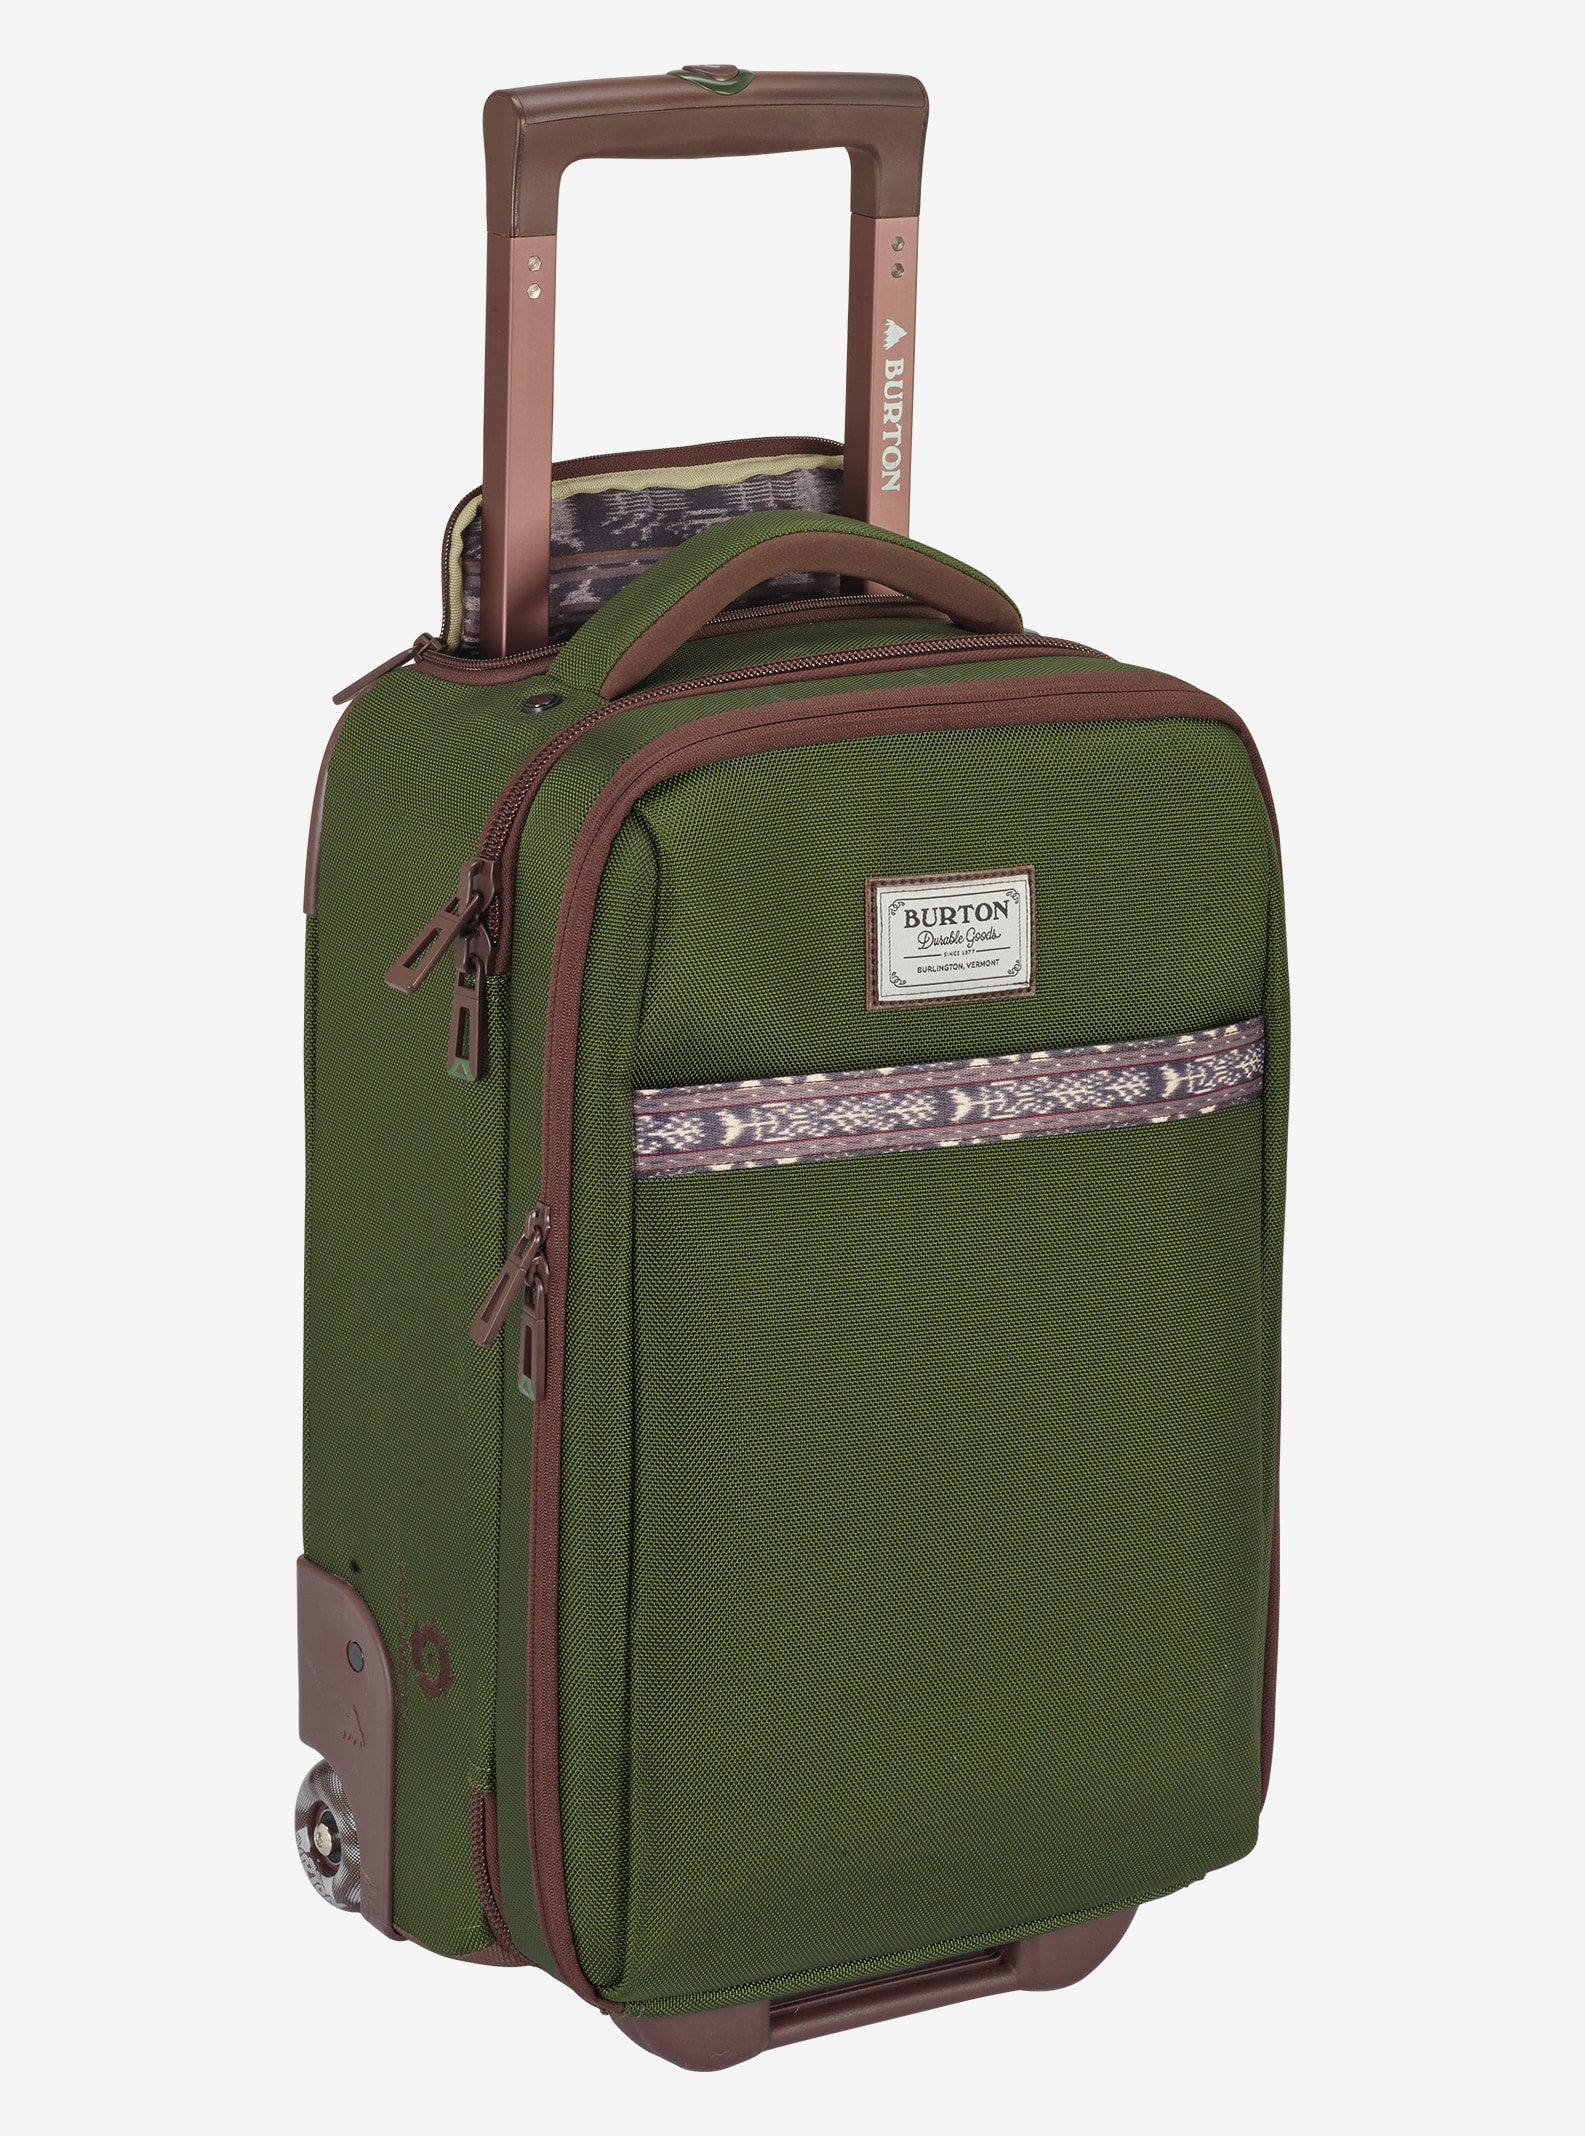 Burton Wheelie Flyer Travel Bag shown in Rifle Green